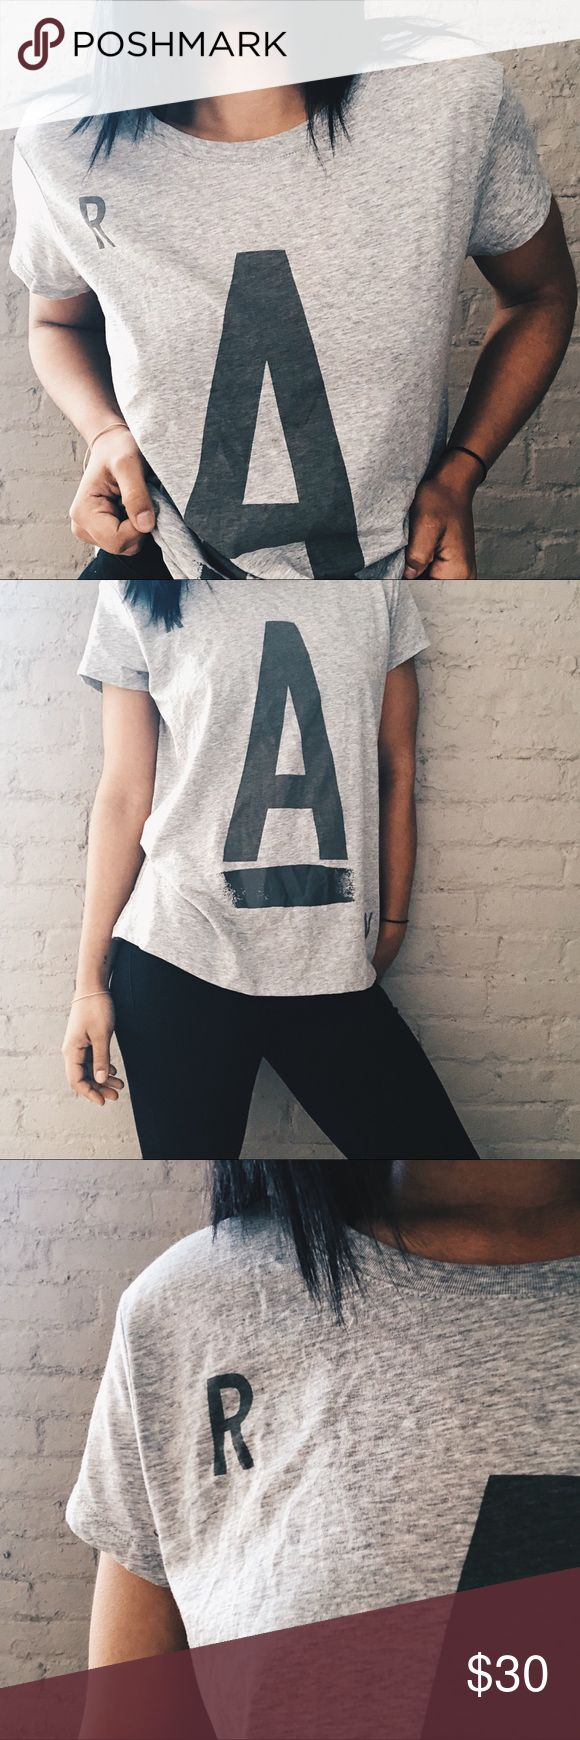 NWT Gray Straight Fit G-Star Raw T-Shirt ✨ Gray Straight Fit G-Star Raw T-Shirt! Women's — New with tags and ready for your closet! Hurry up and snag this perfect Tee! ✨✨ G-Star Tops